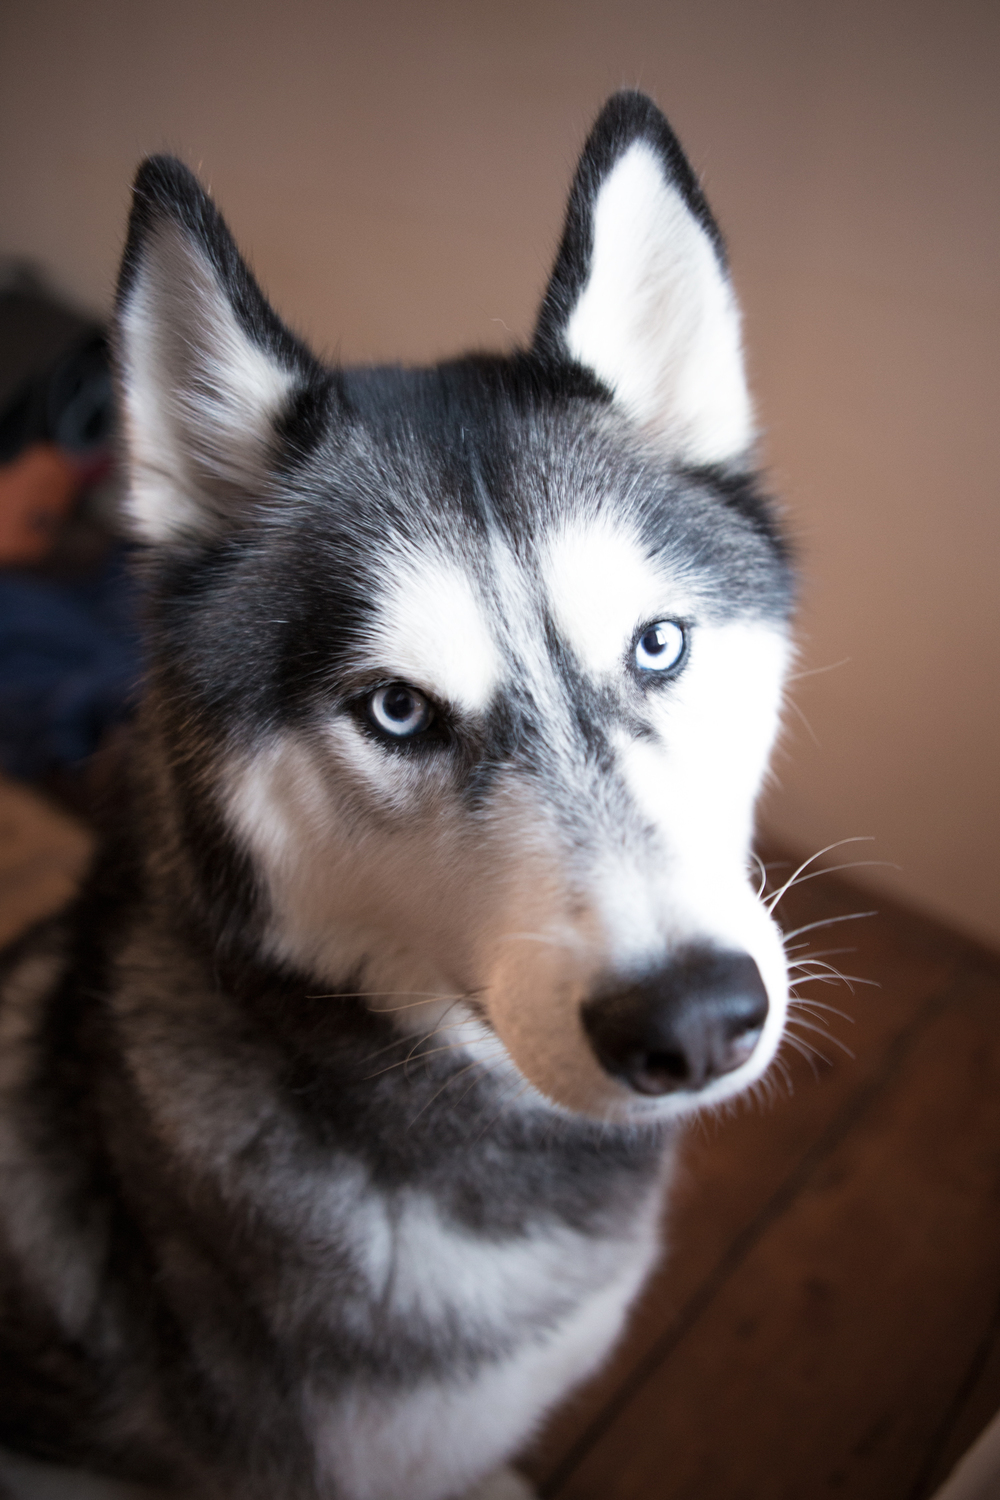 My siberian husky turned 6 this week